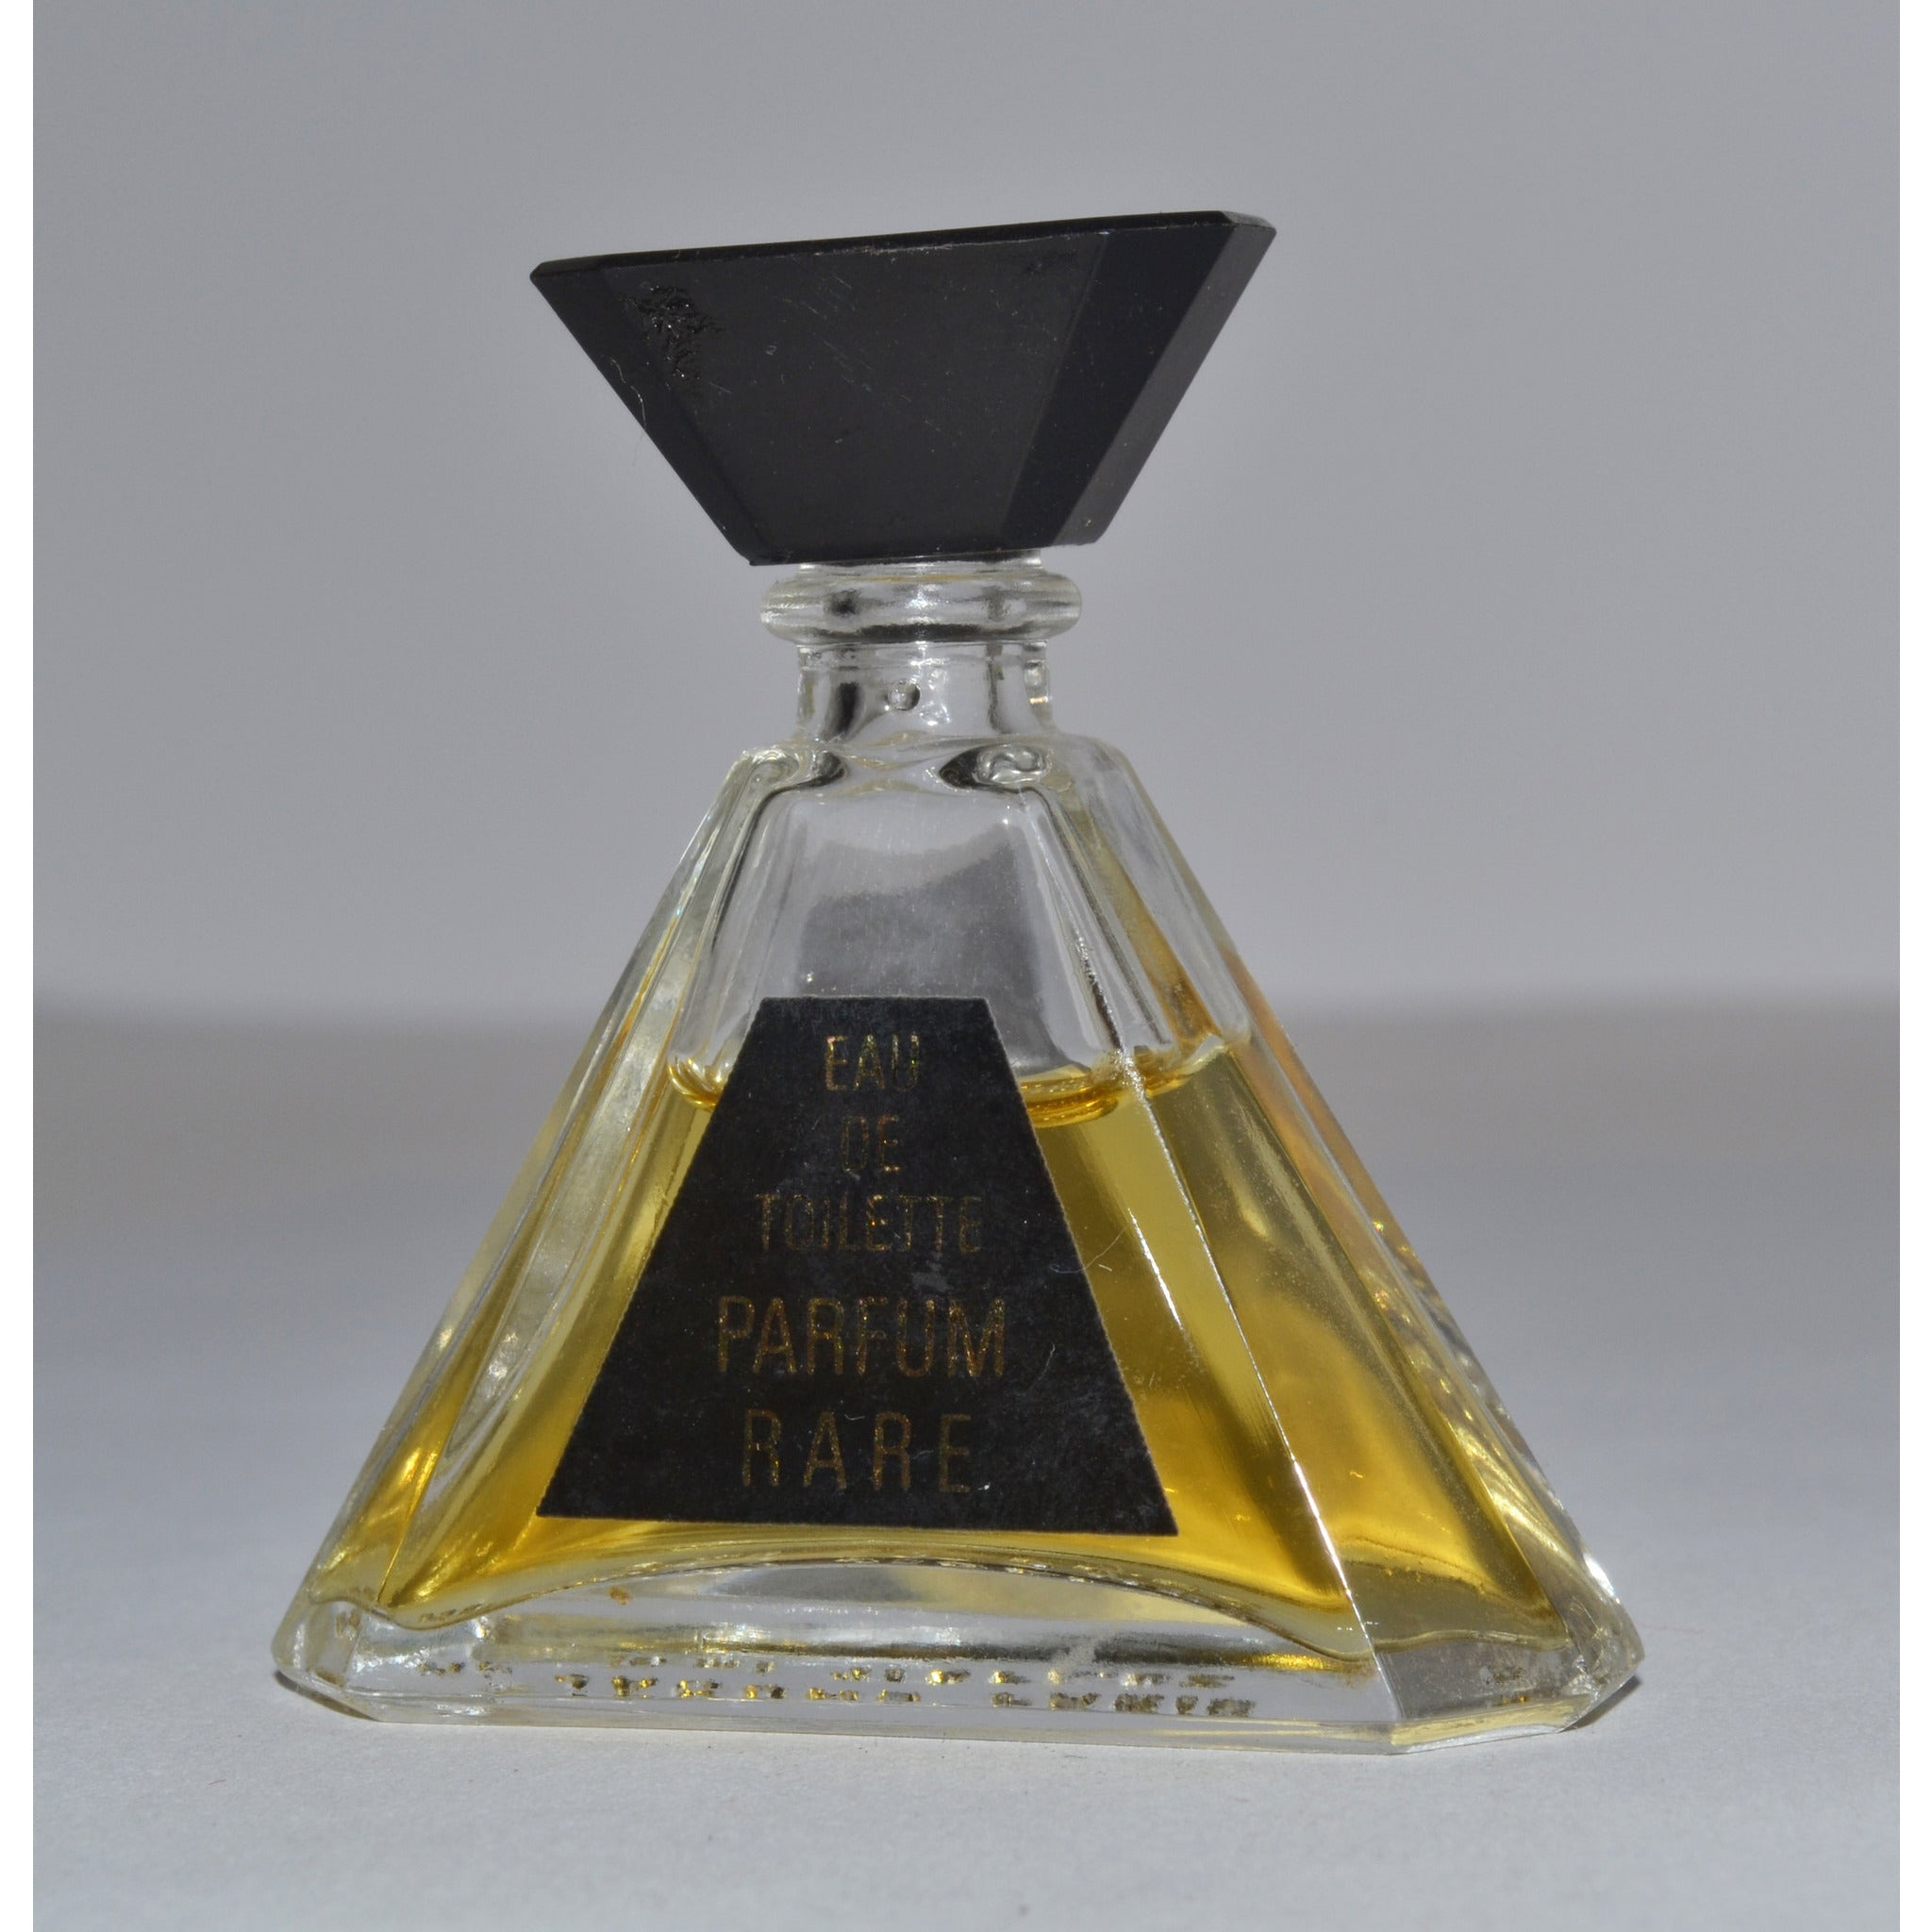 Vintage Parfum Rare Eau De Toilette Mini By Jacomo